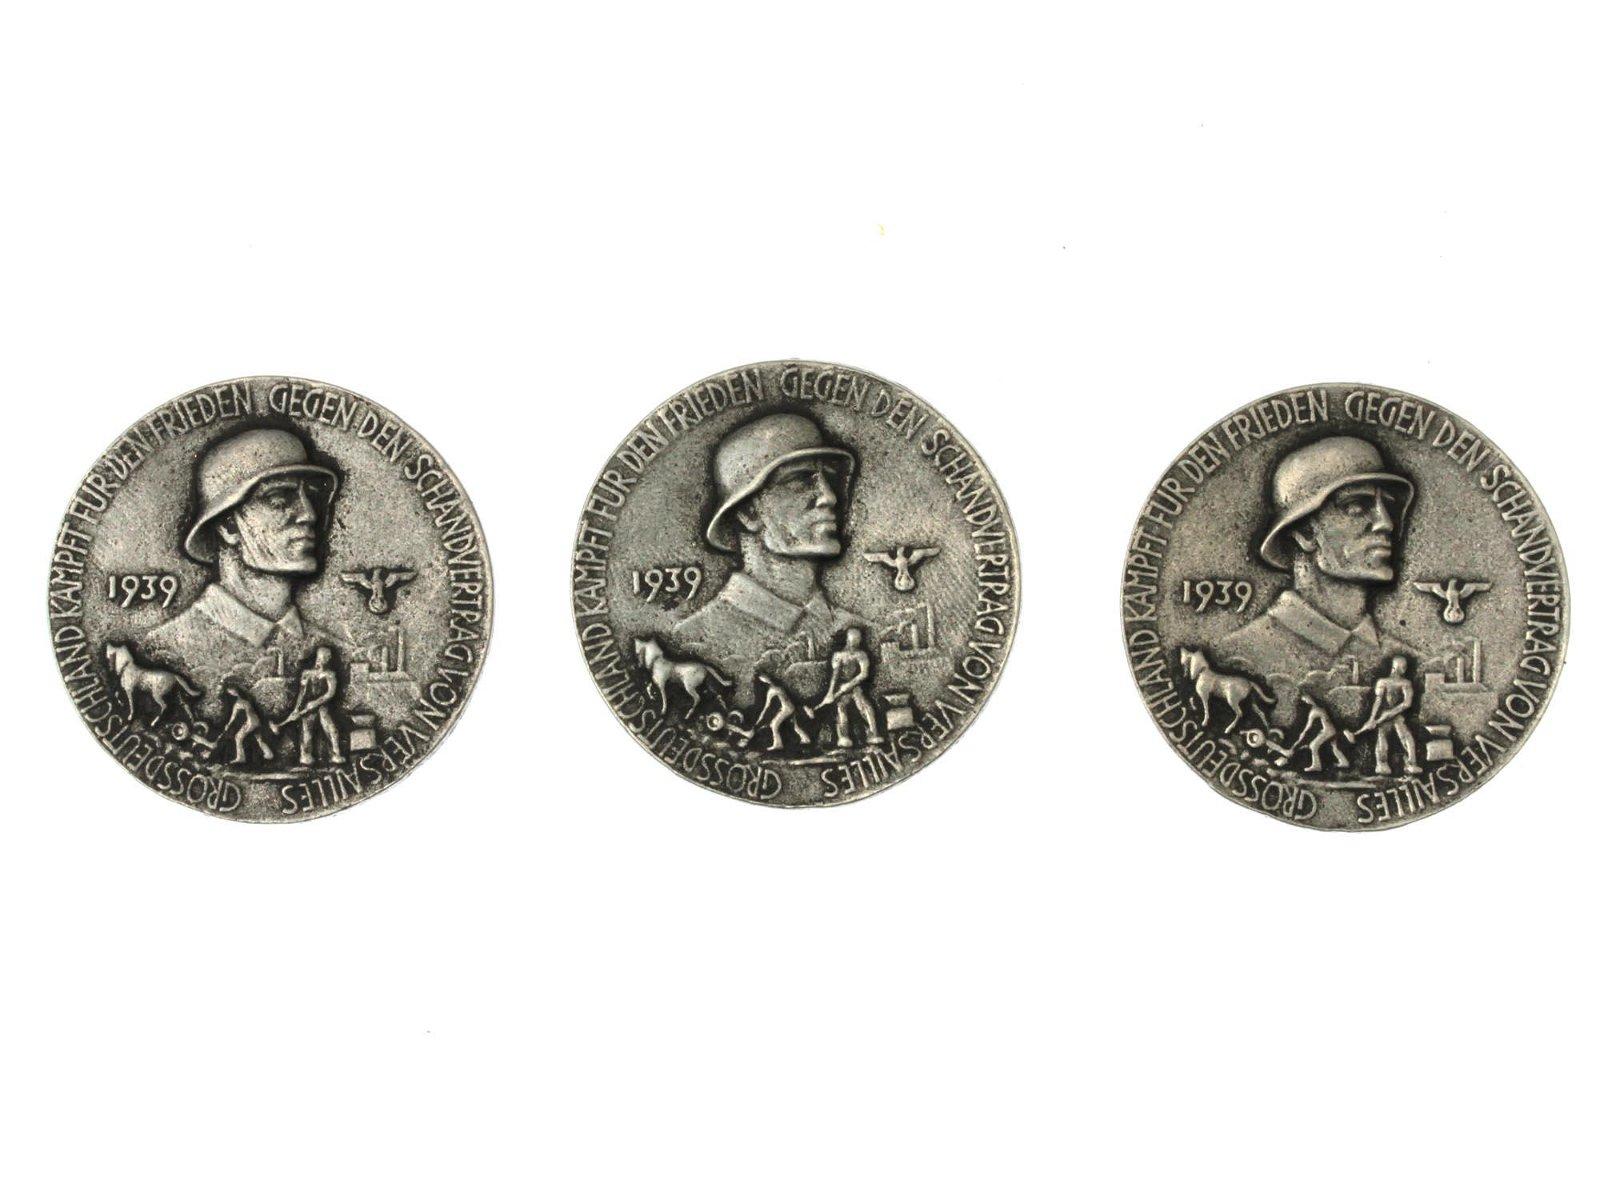 VINTAGE GERMAN ANTI-SEMITIC MEDAL COINS